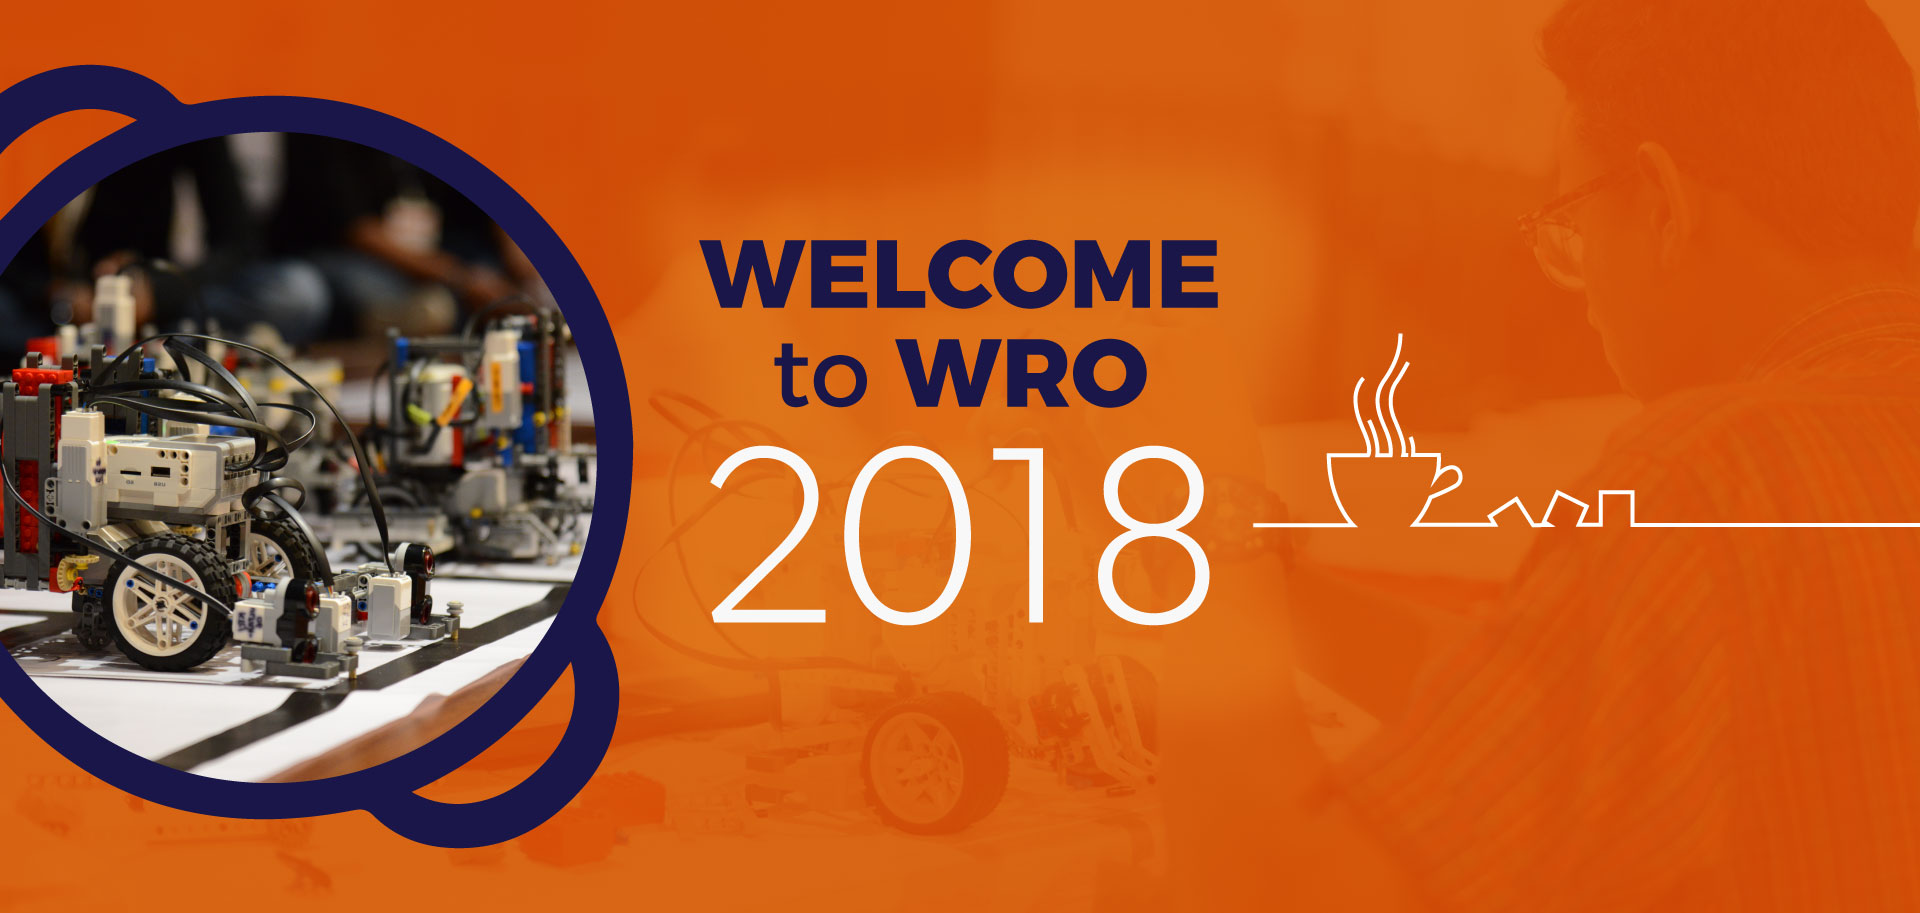 Wro 2019 rules for dating